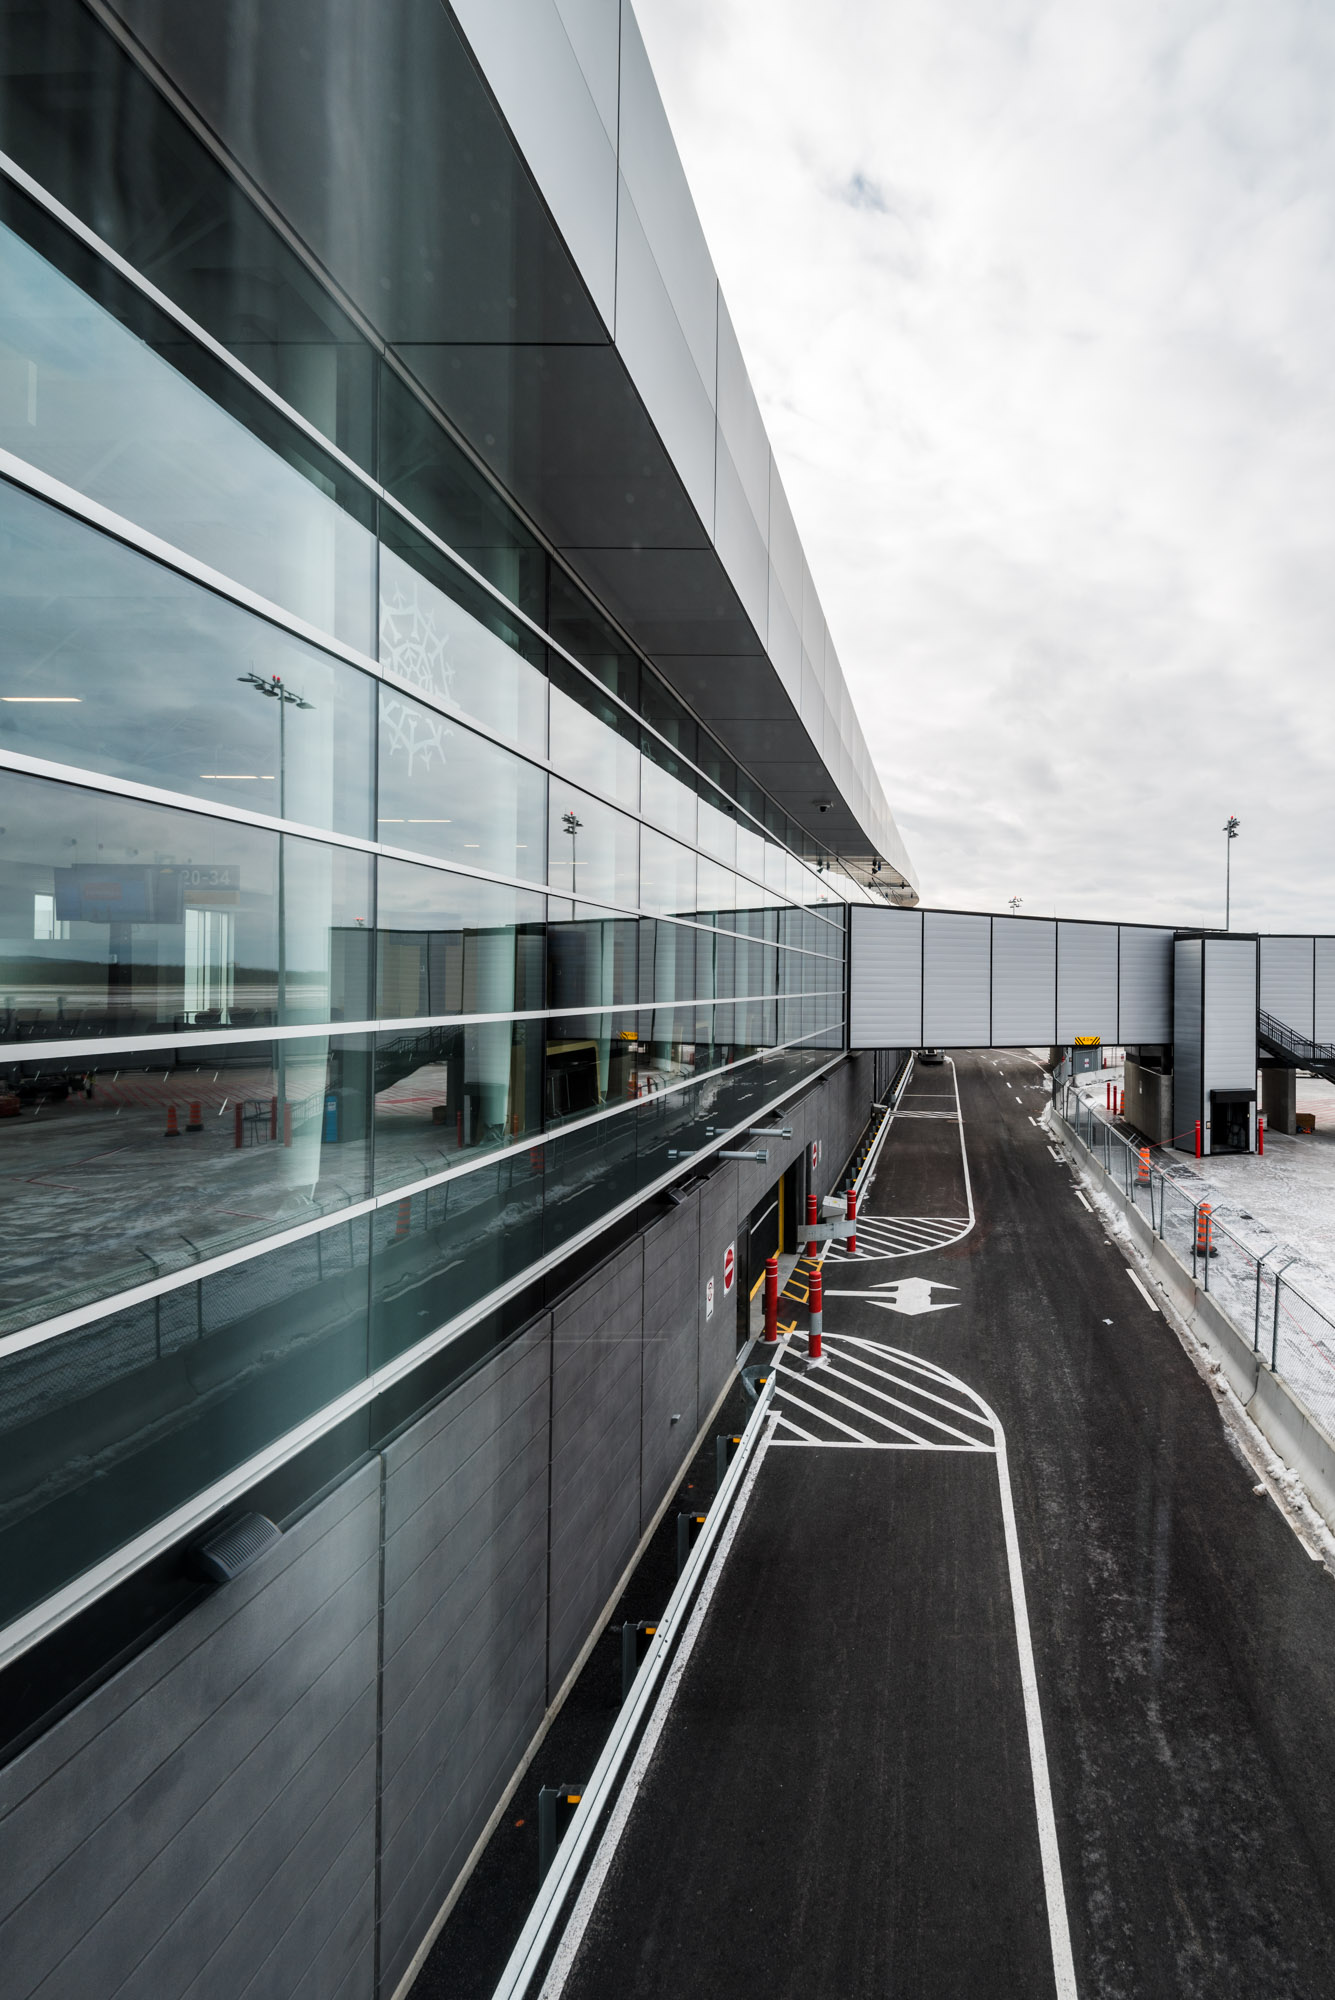 Jeff On The Road - Travel - Aéroport international Jean-Lesage de Québec - All photos are under Copyright © 2017 Jeff Frenette Photography / dezjeff. To use the photos, please contact me at dezjeff@me.com.